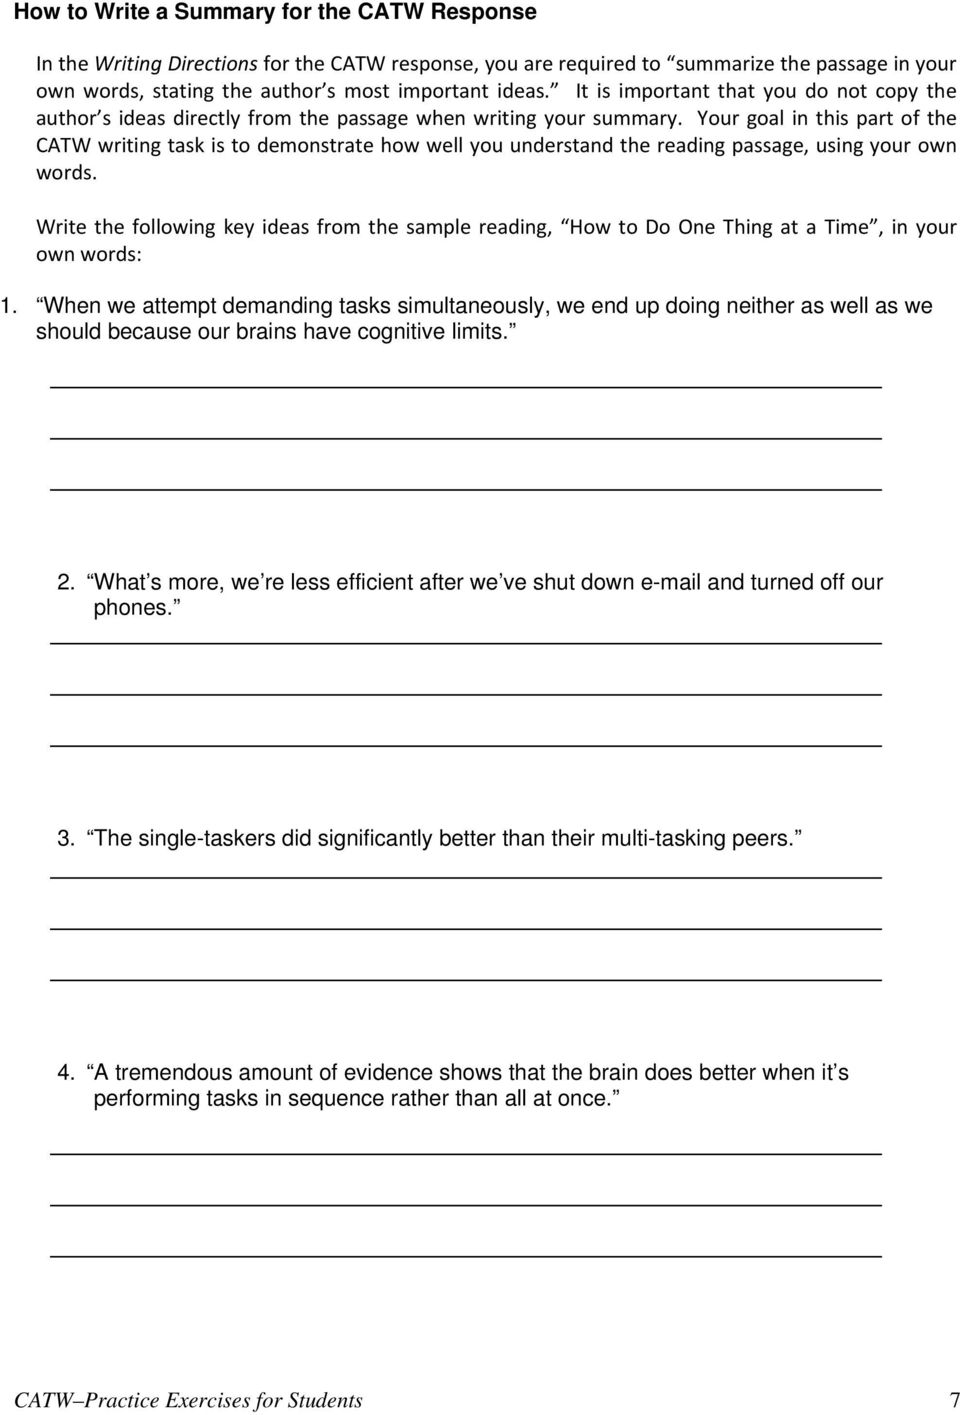 essay about conflict environmental pollution pdf